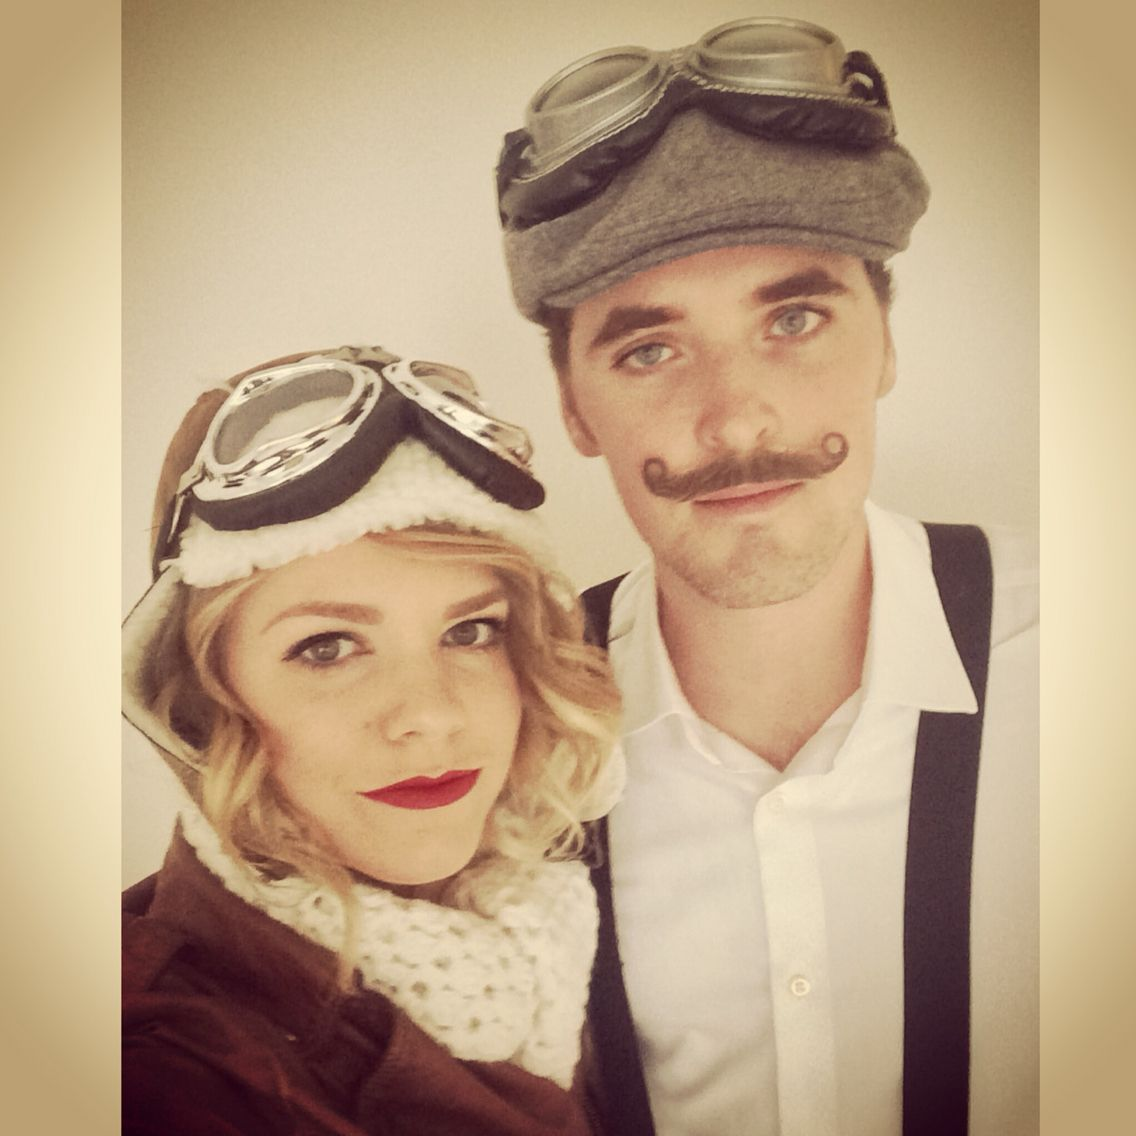 Amelia Earhart And Orville Wright Halloween Couples Costumes Couple Halloween Costumes Cute Couple Halloween Costumes Diy Couples Costumes